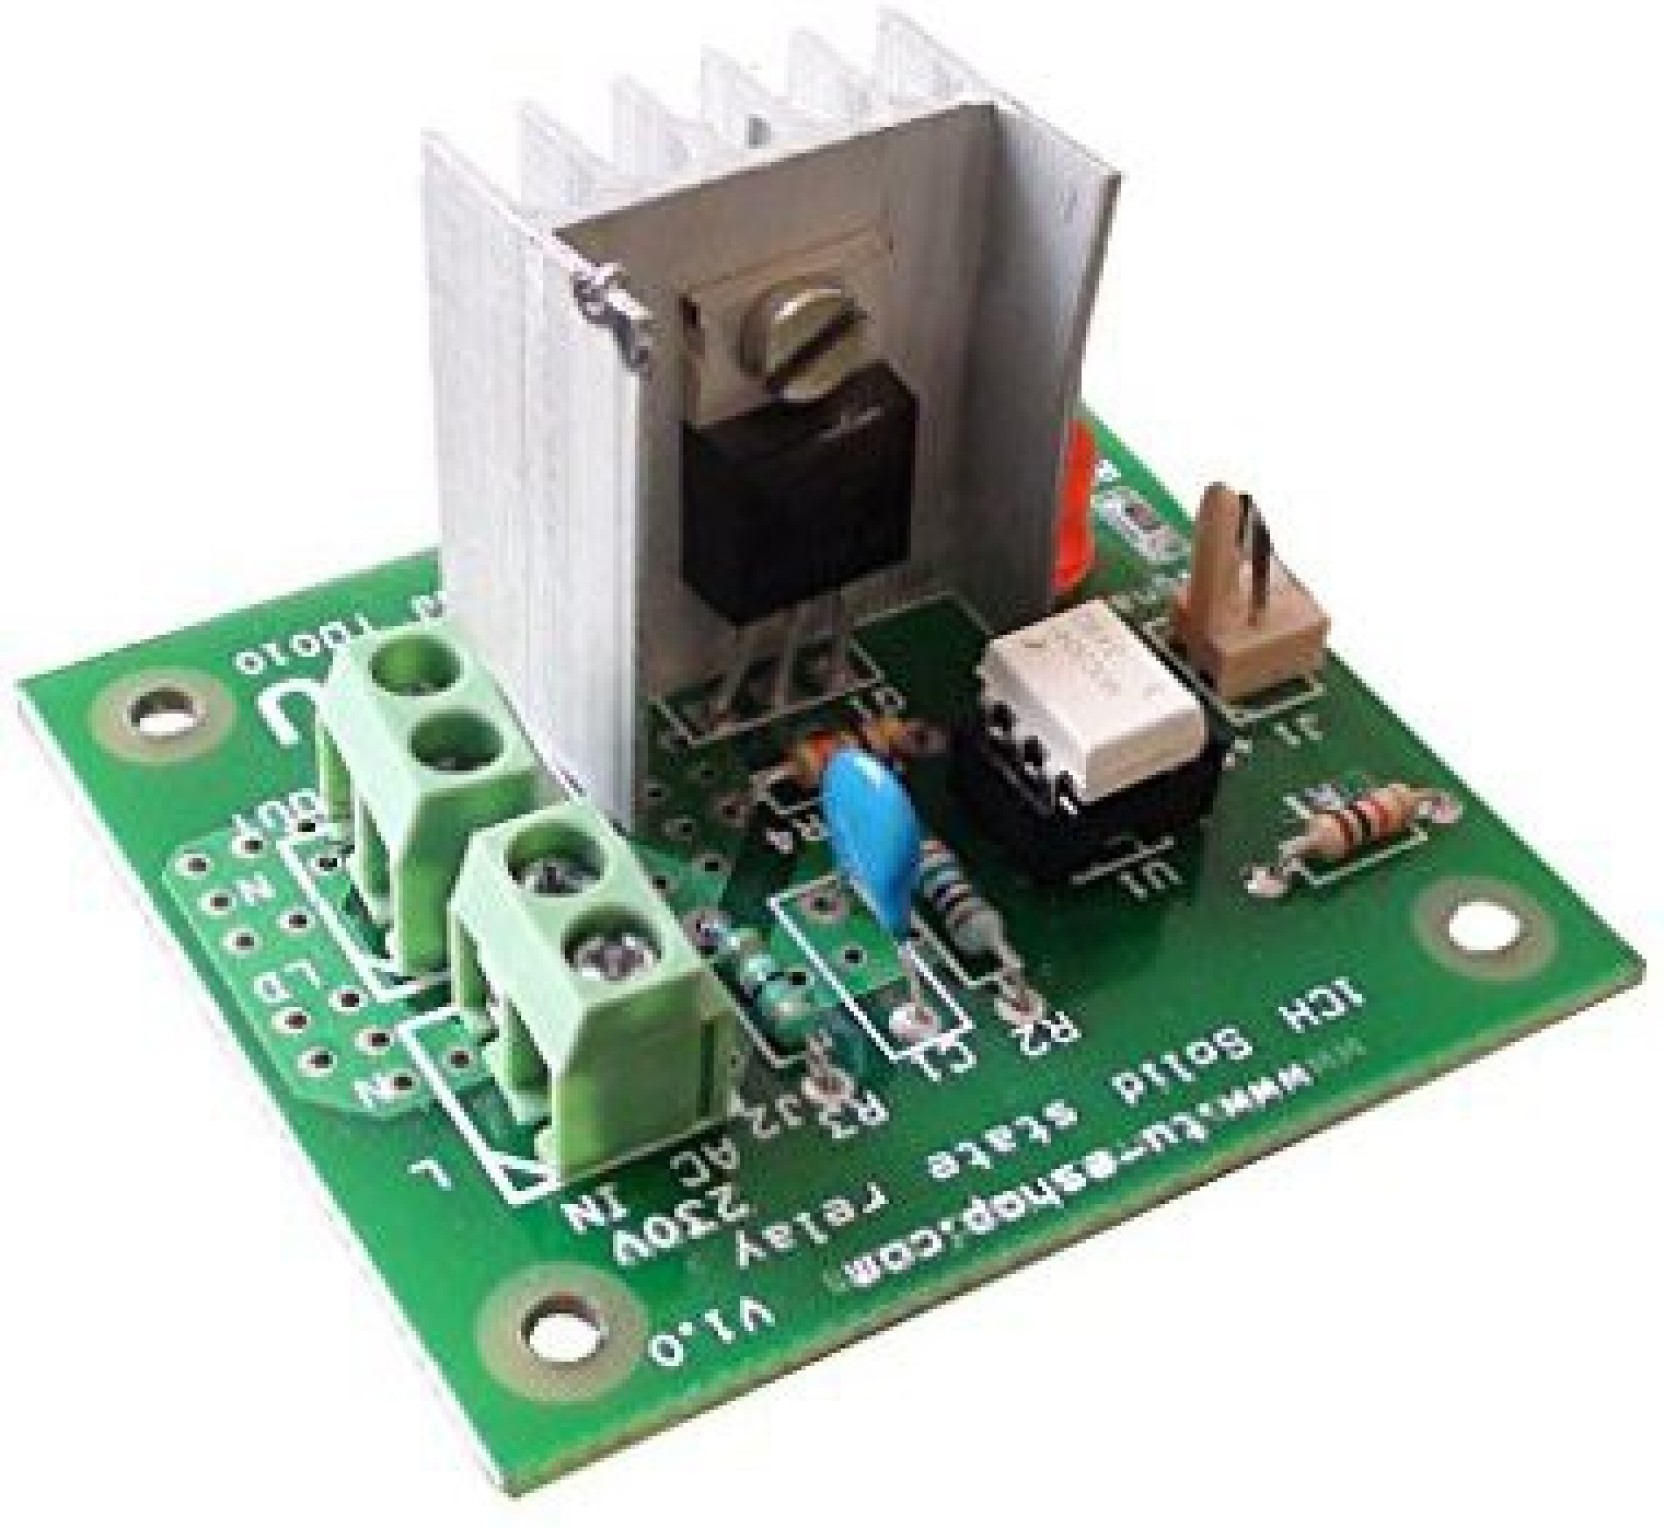 Generic Technology Uncorked 1 Channel Solid State Relay Kit Price In Dcsolidstaterelays Relaycontrol Controlcircuit Circuit On Offer